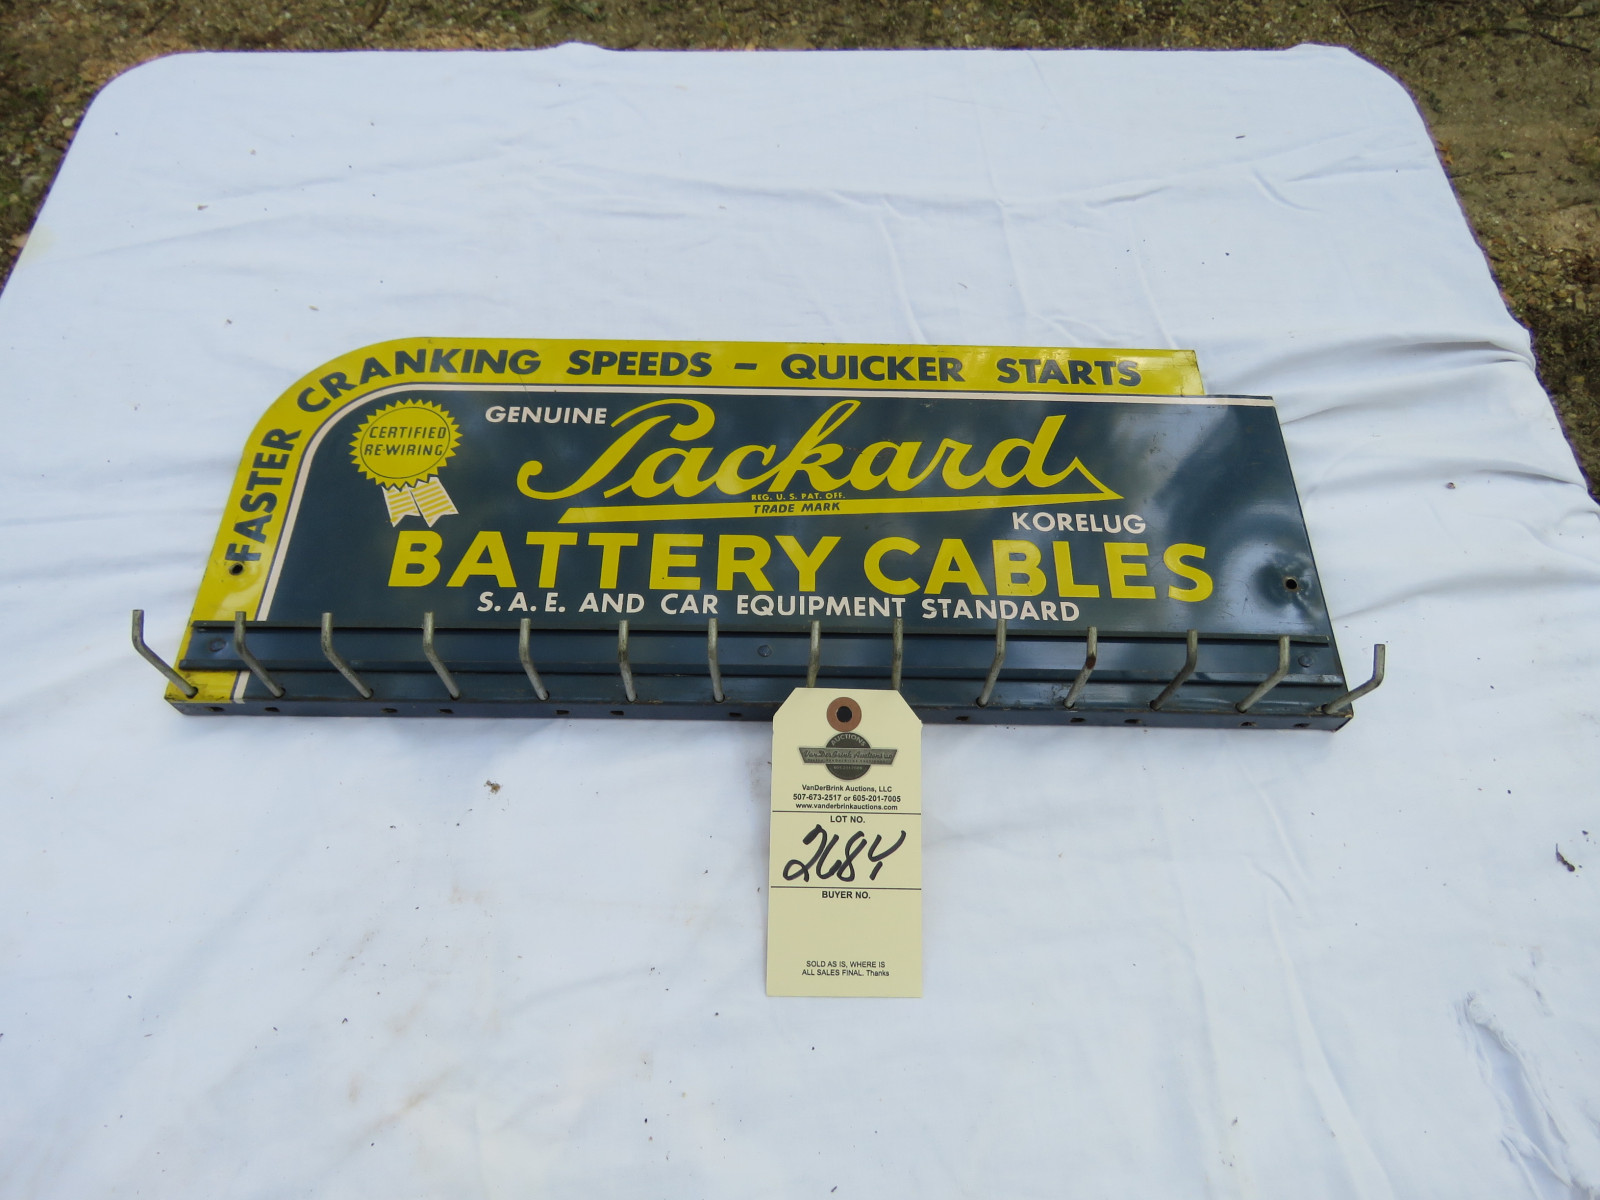 Packard Battery Cable Painted Tin Rack - Image 1